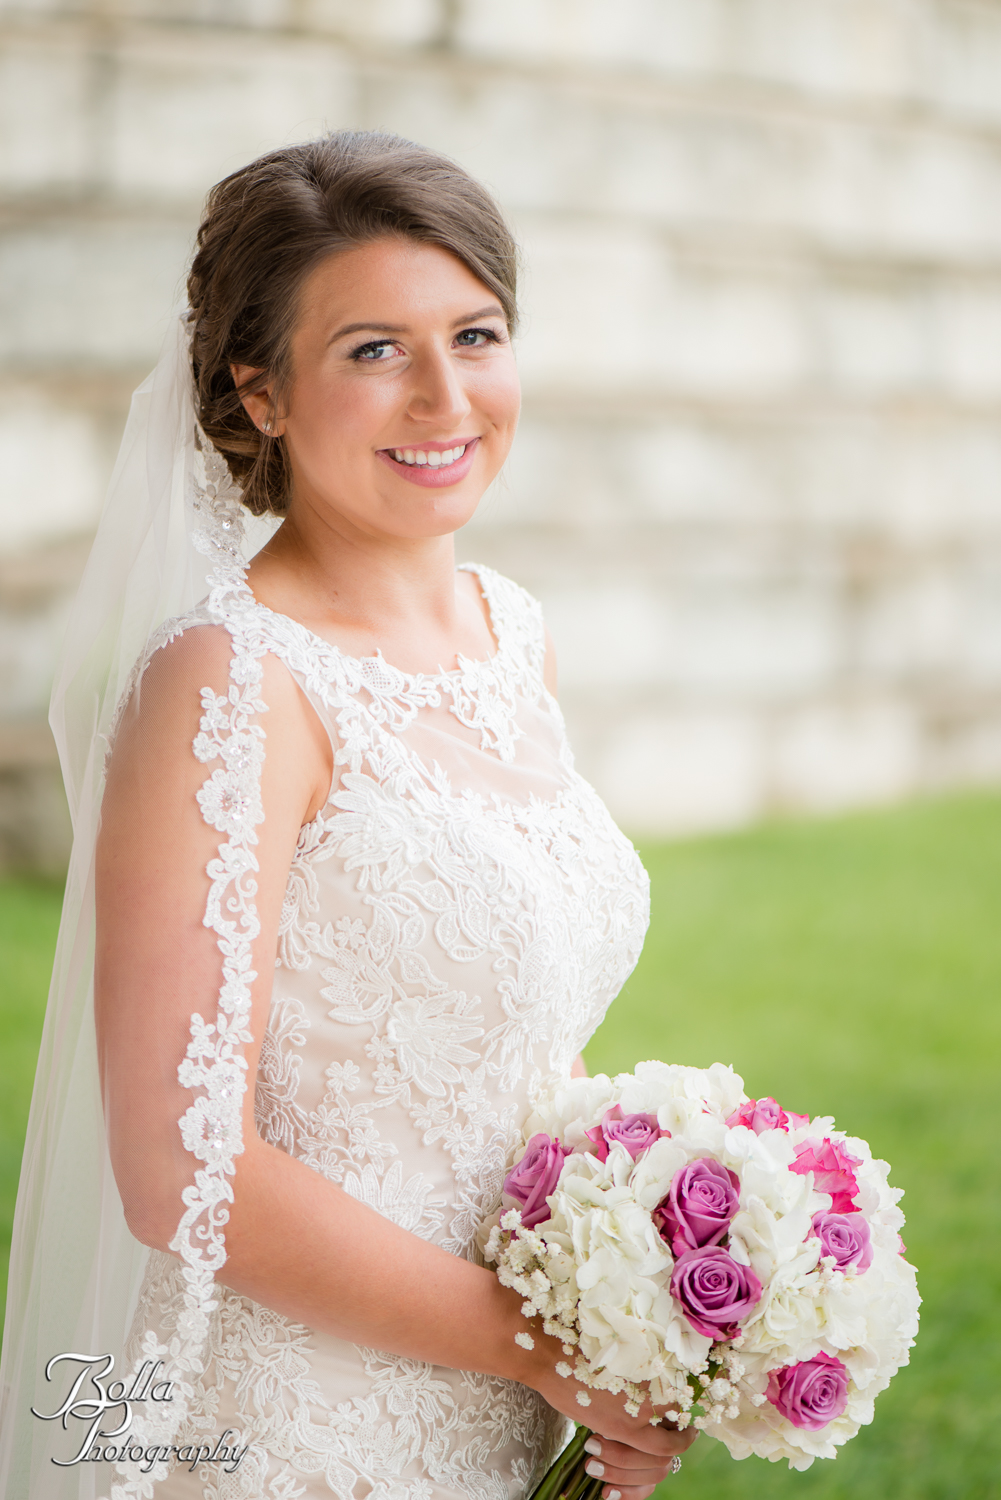 Bolla_Photography_St_Louis_wedding_photographer_Villa_Marie_Winery-0106.jpg